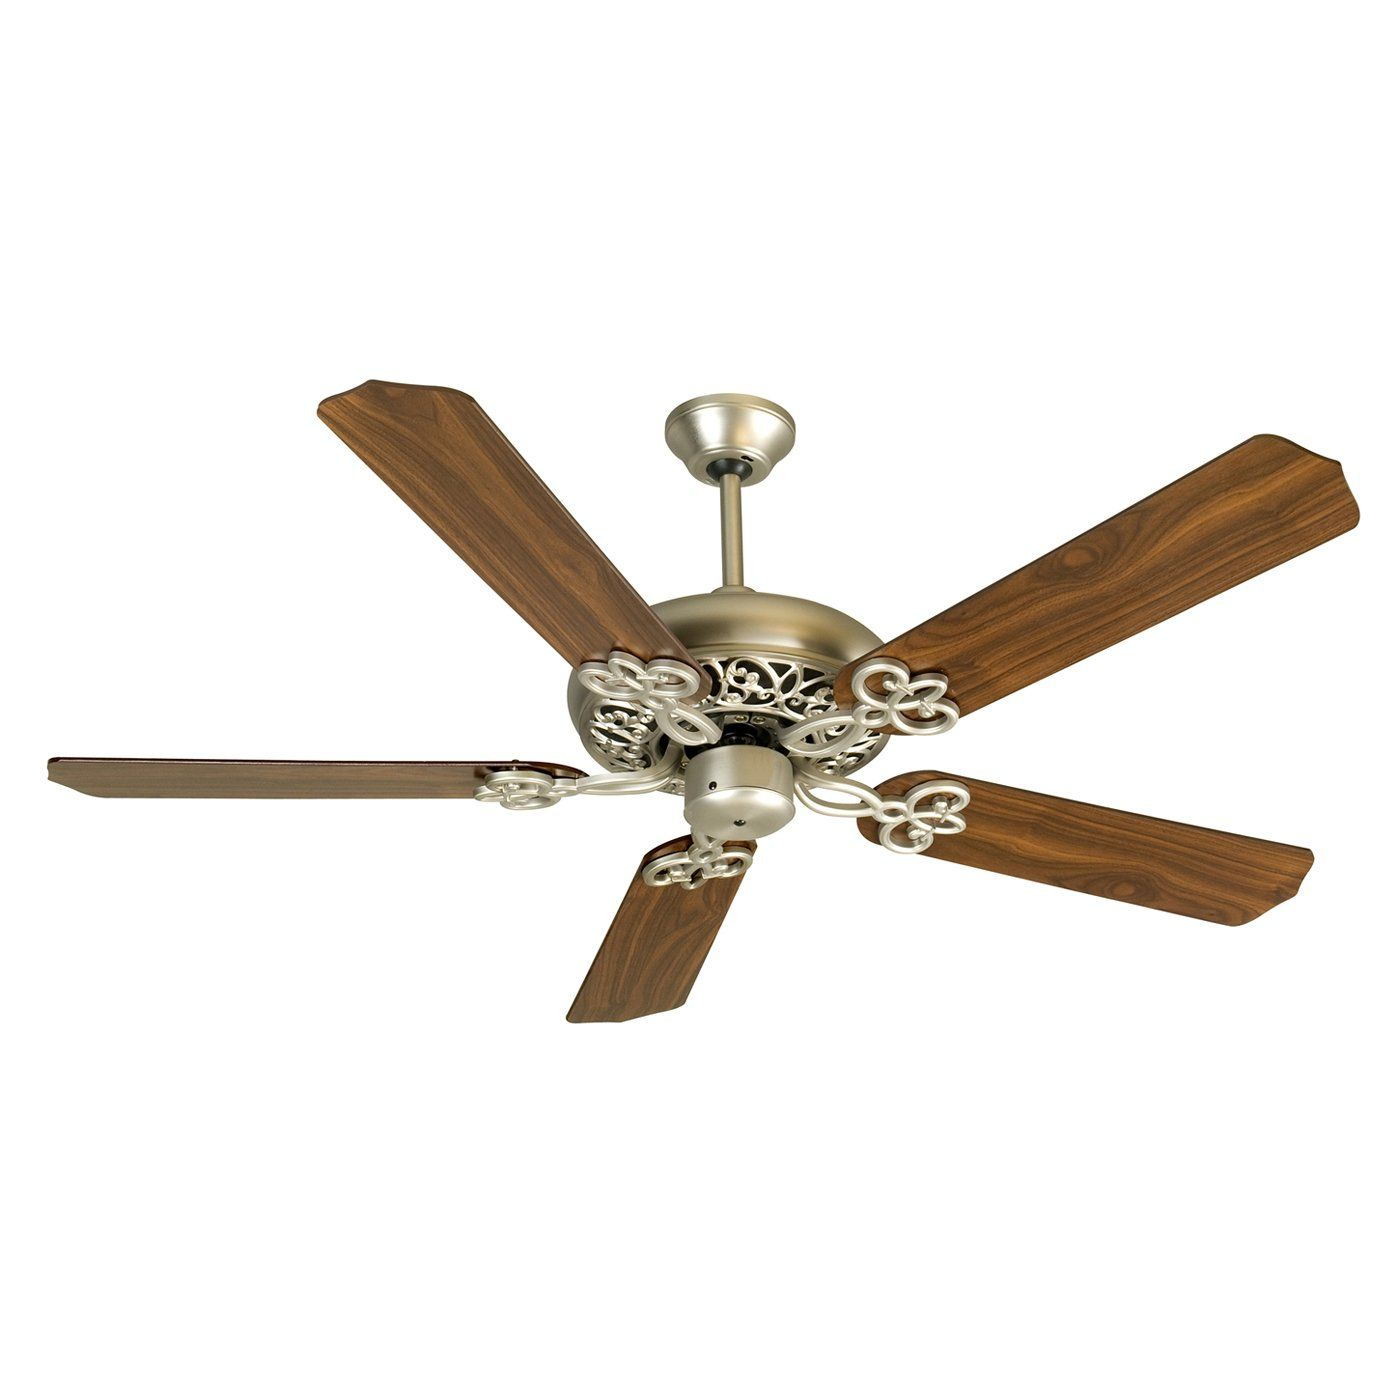 Craftmade K10 Cecilia 52 in Ceiling Fan at ATG Stores